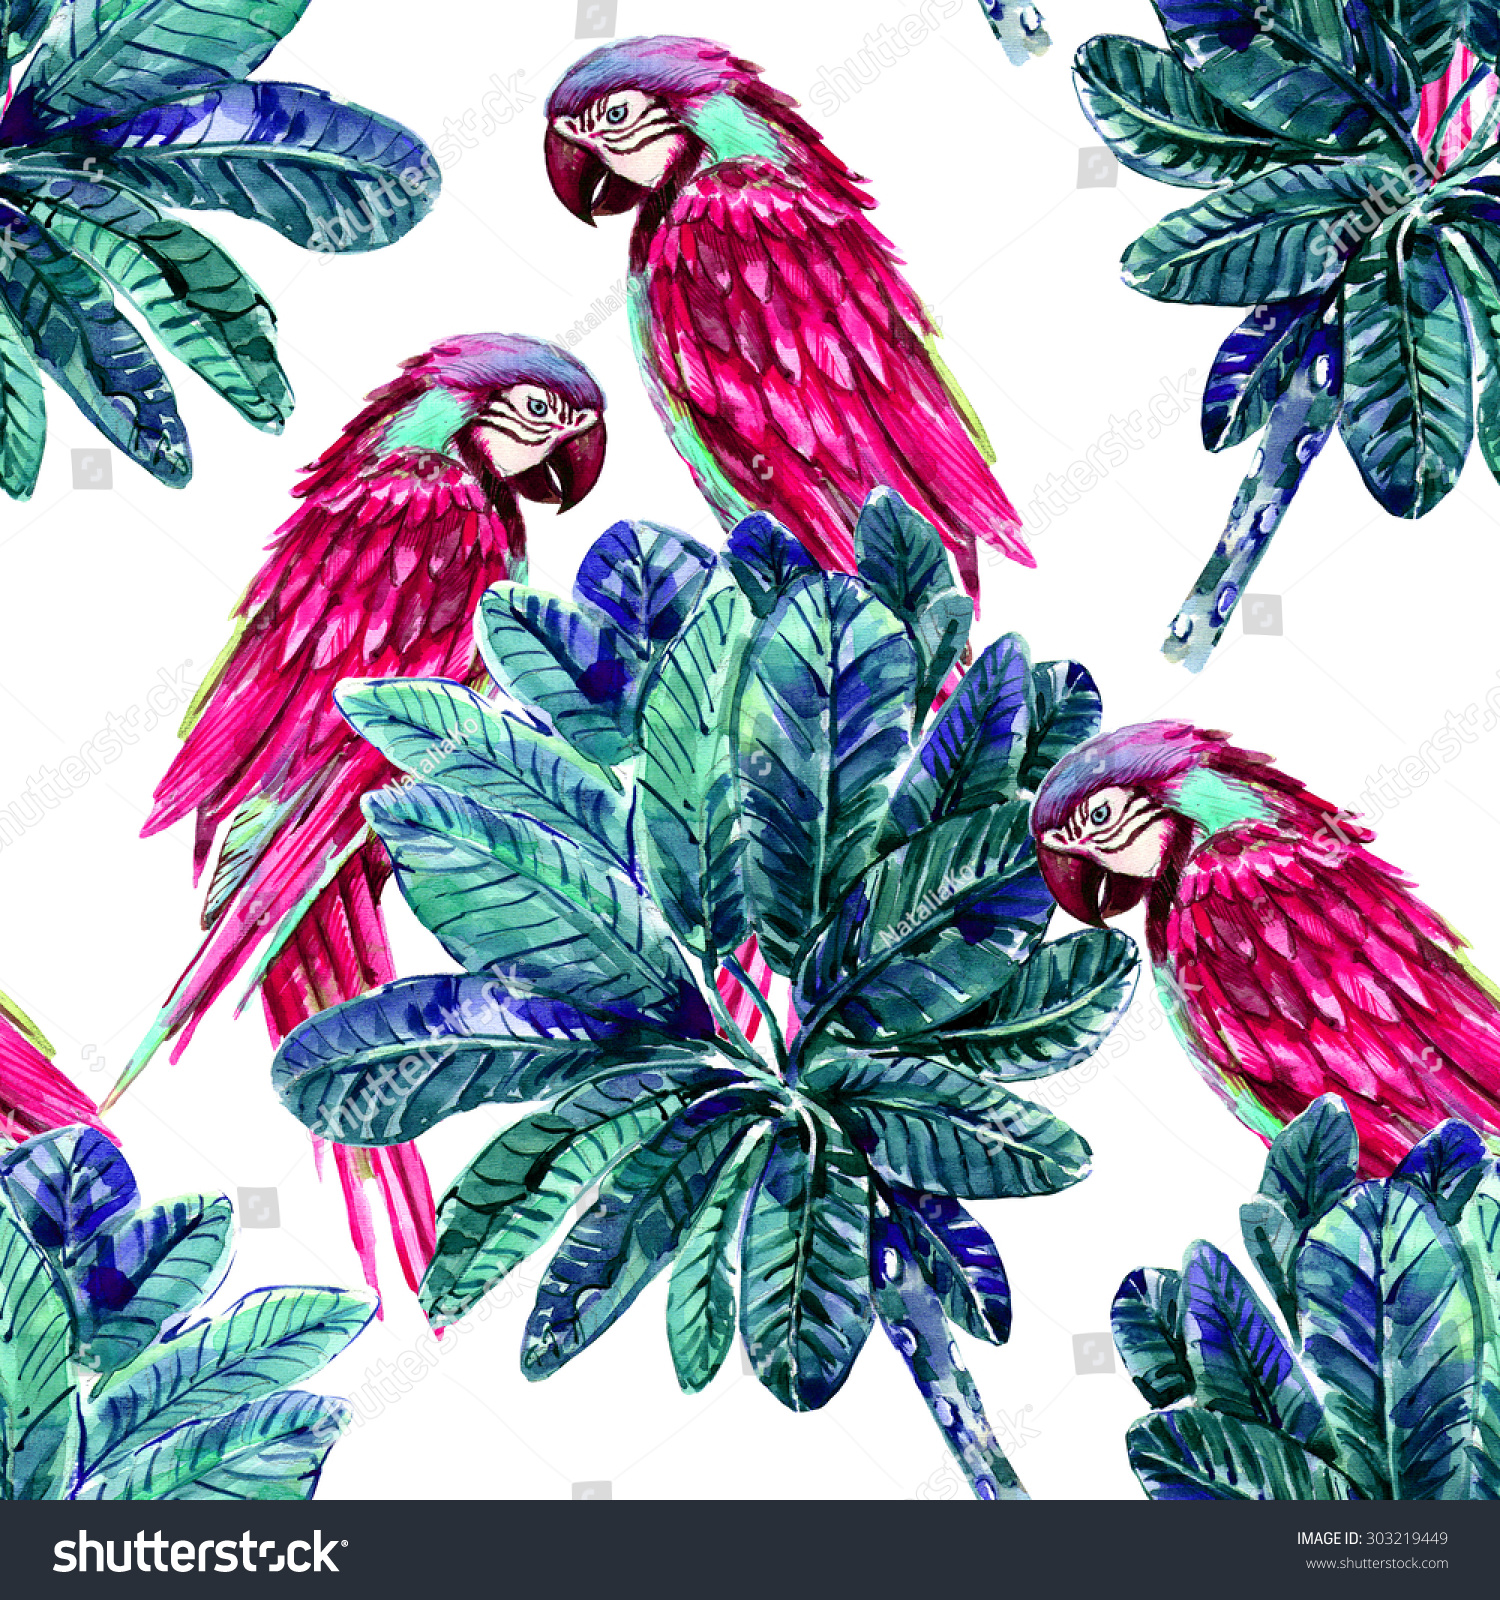 Dhak Tree Information Stock Photo Watercolor Parrots And Tropical Jungle Leaves